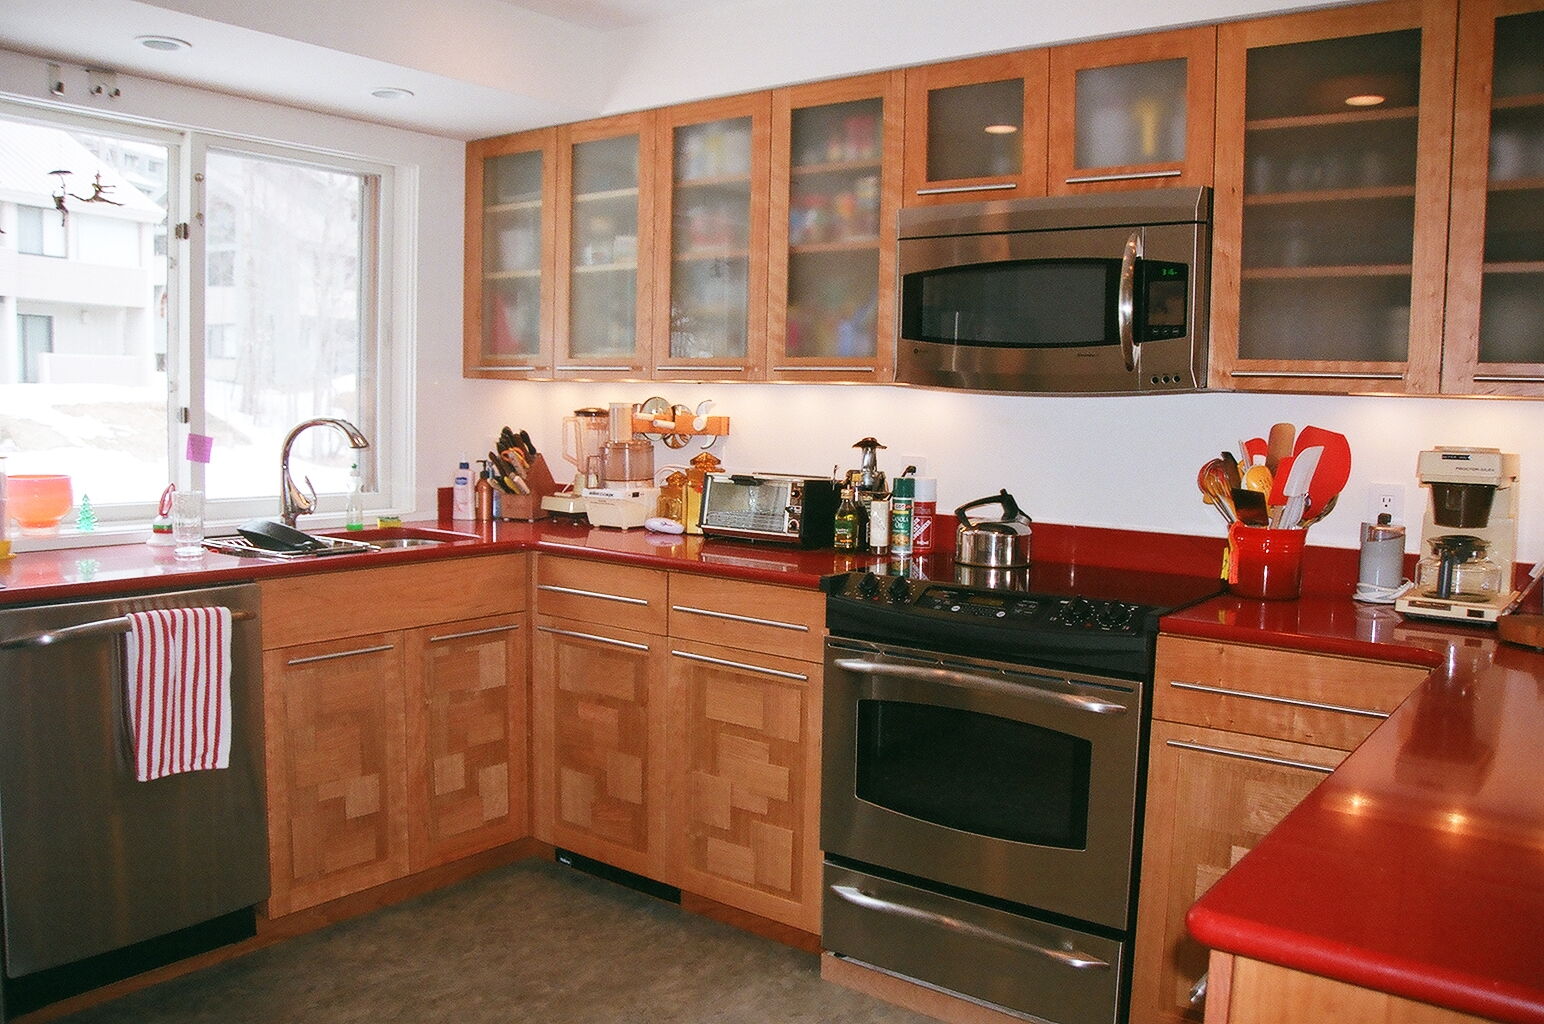 Loon Kitchen - Cherry wood with a unique dimensional veneer pattern